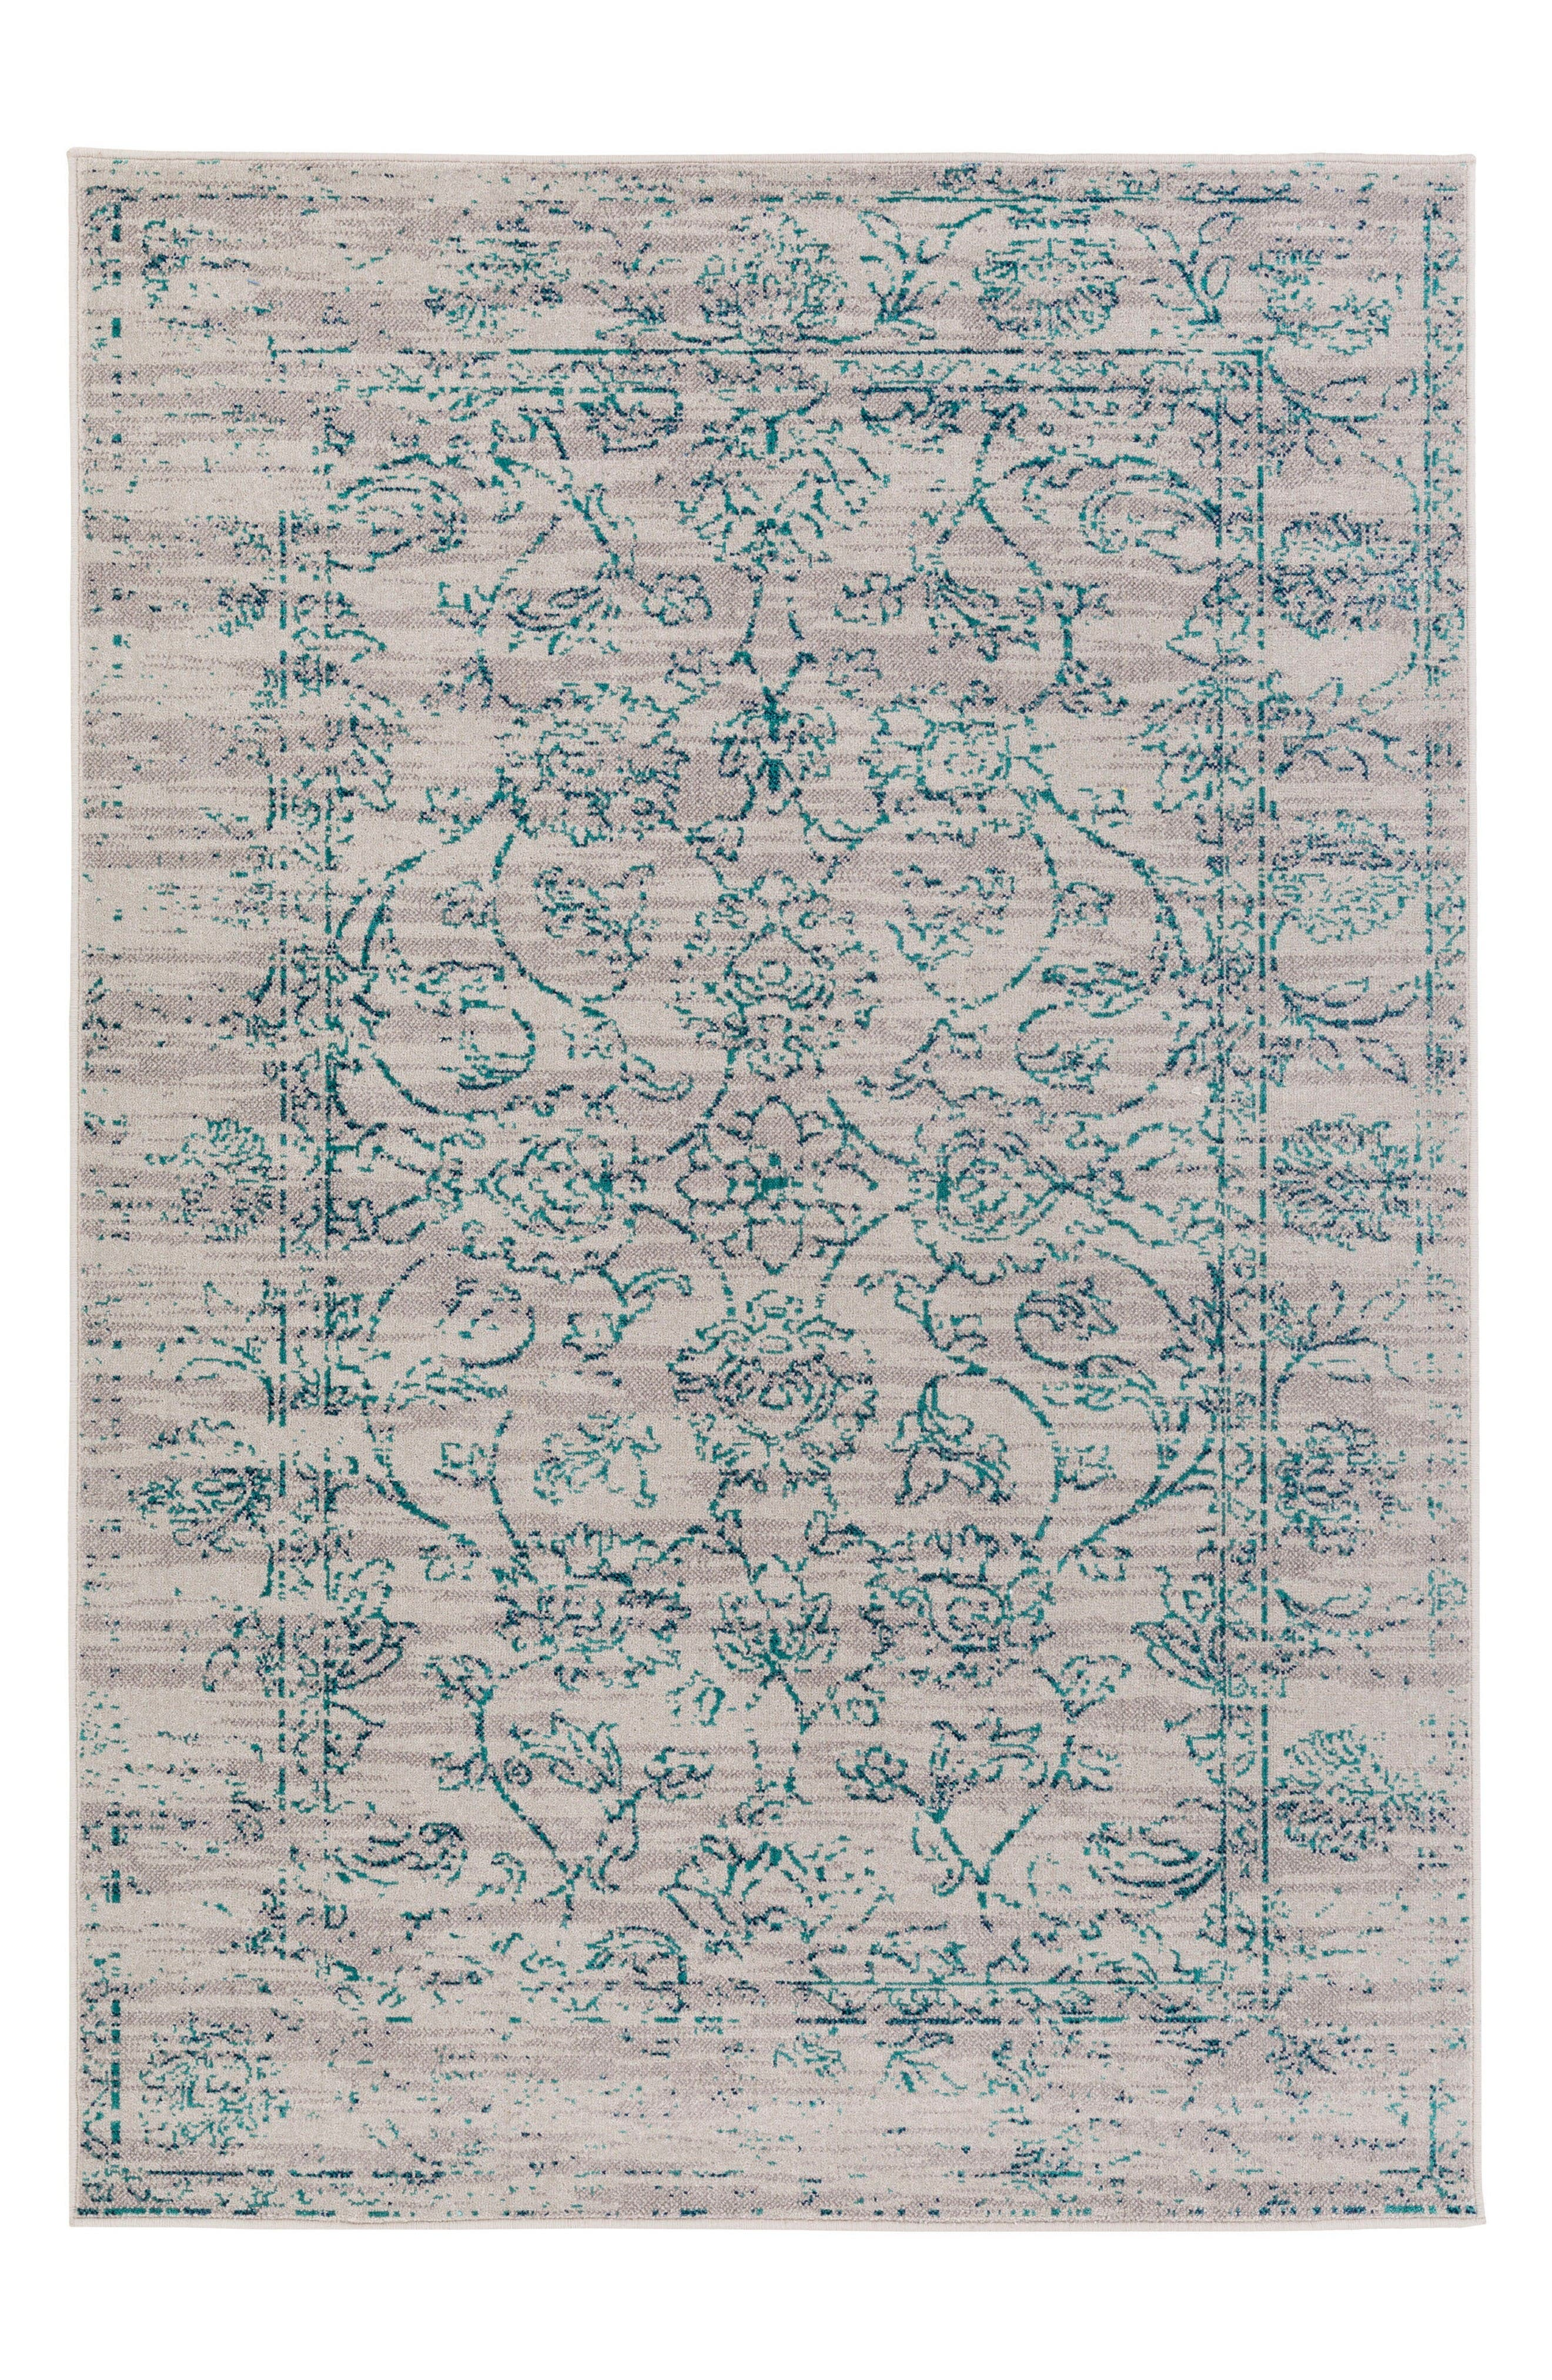 Stretto Classic Rug,                             Main thumbnail 1, color,                             Grey/ Teal